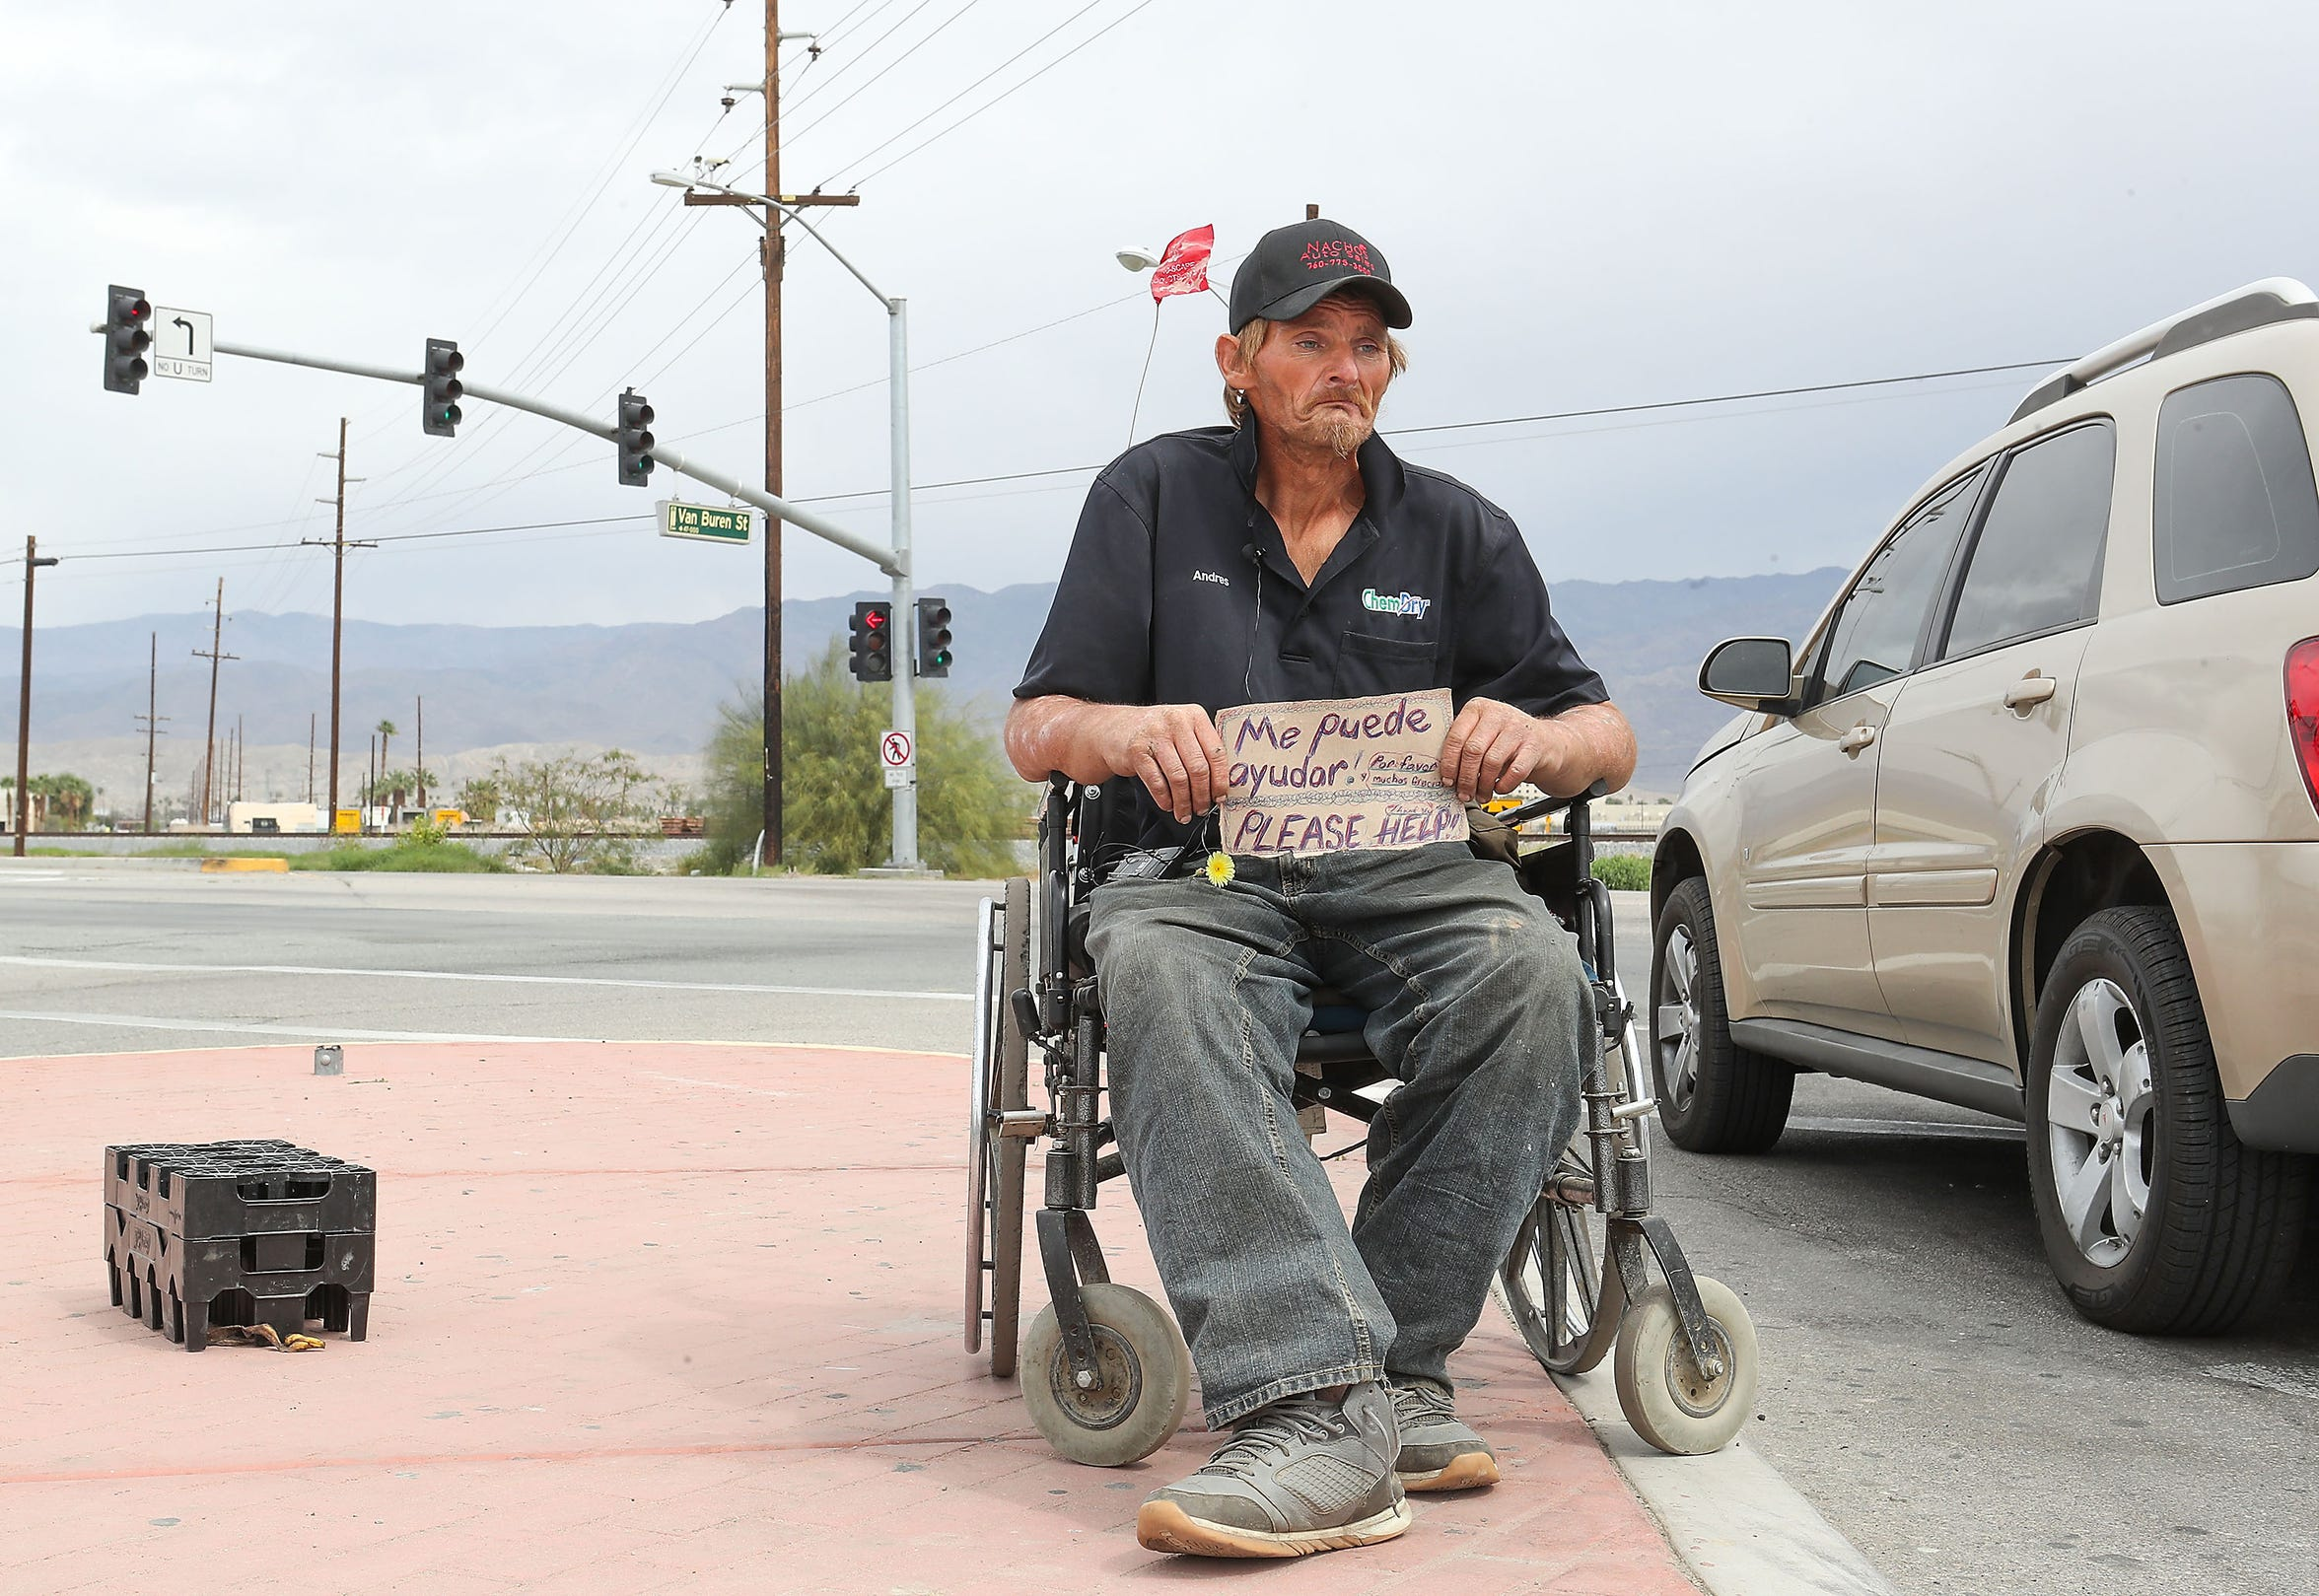 Robert Hensley panhandles for enough money to buy some heroin which treats his pain and his addiction in Indio , April 8, 2019.